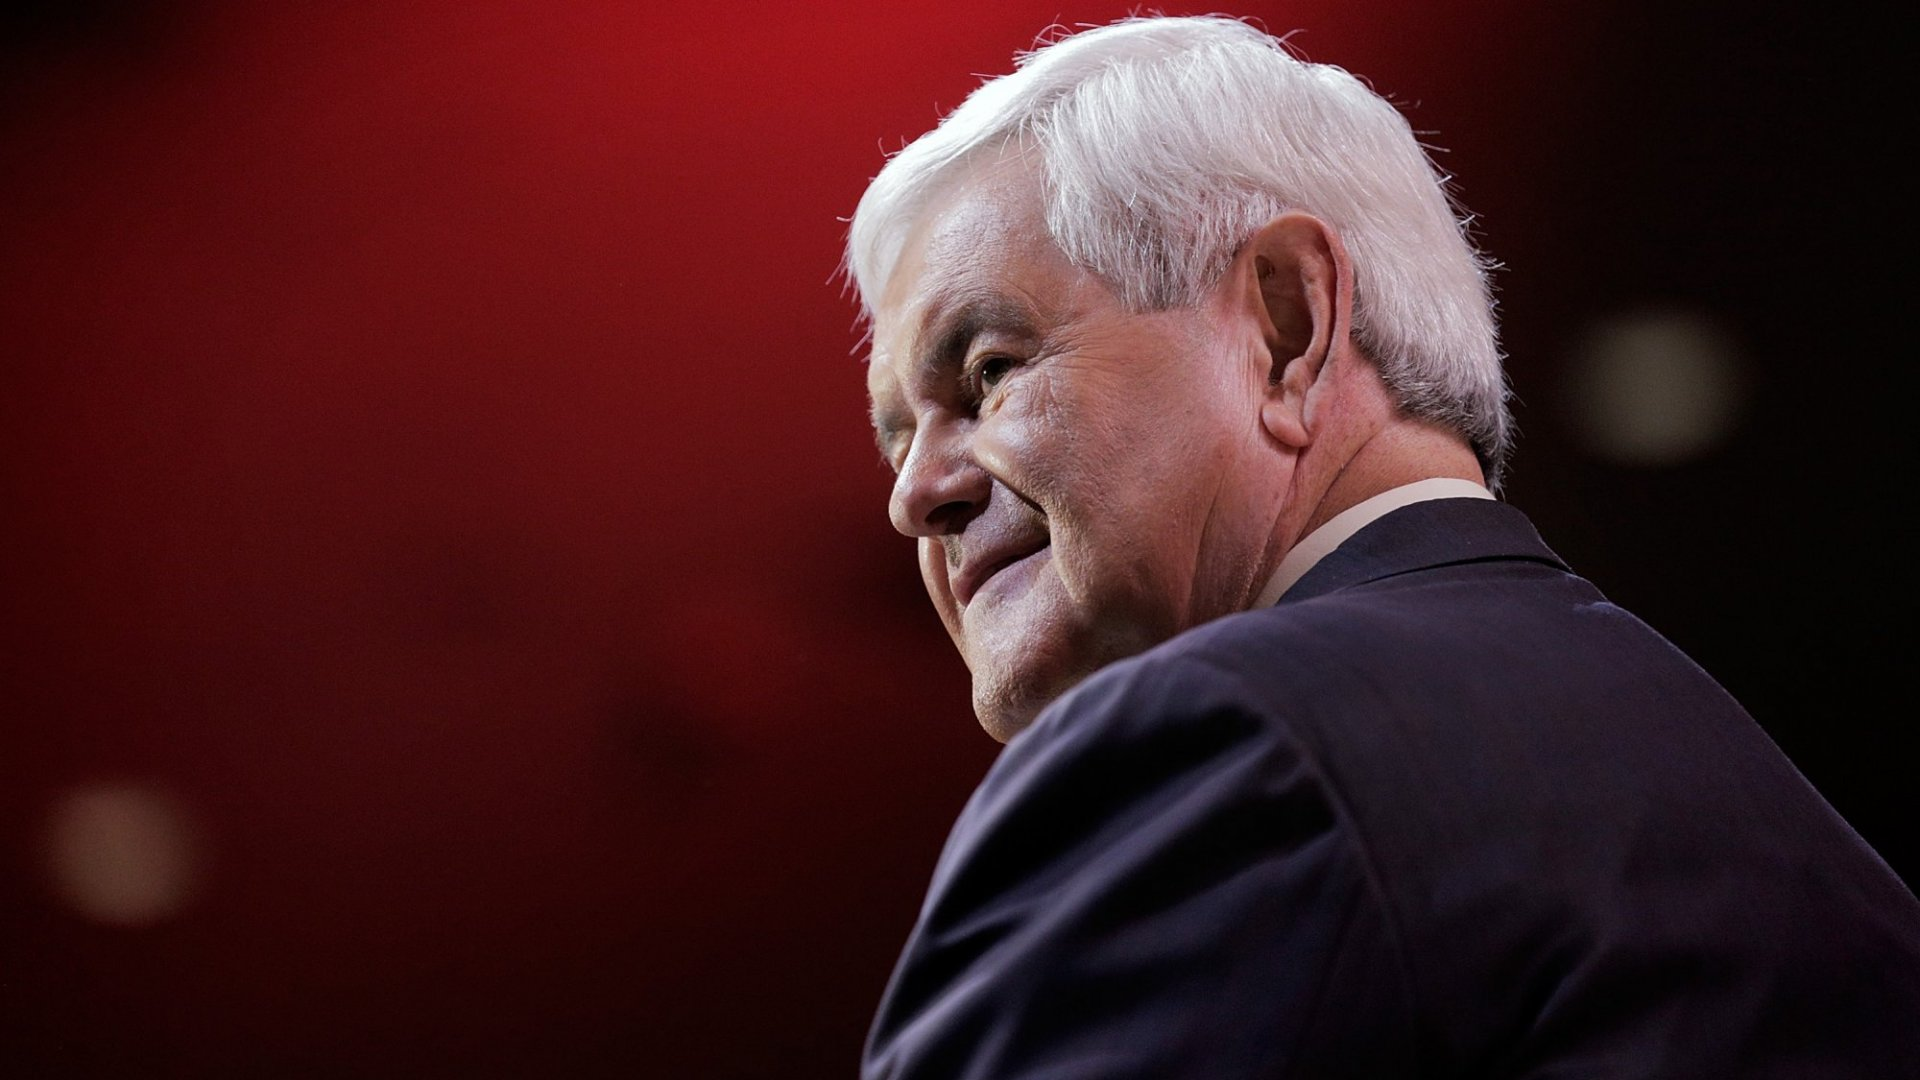 Gingrich's Advice for Trump: Great Leaders Don't Go It Alone